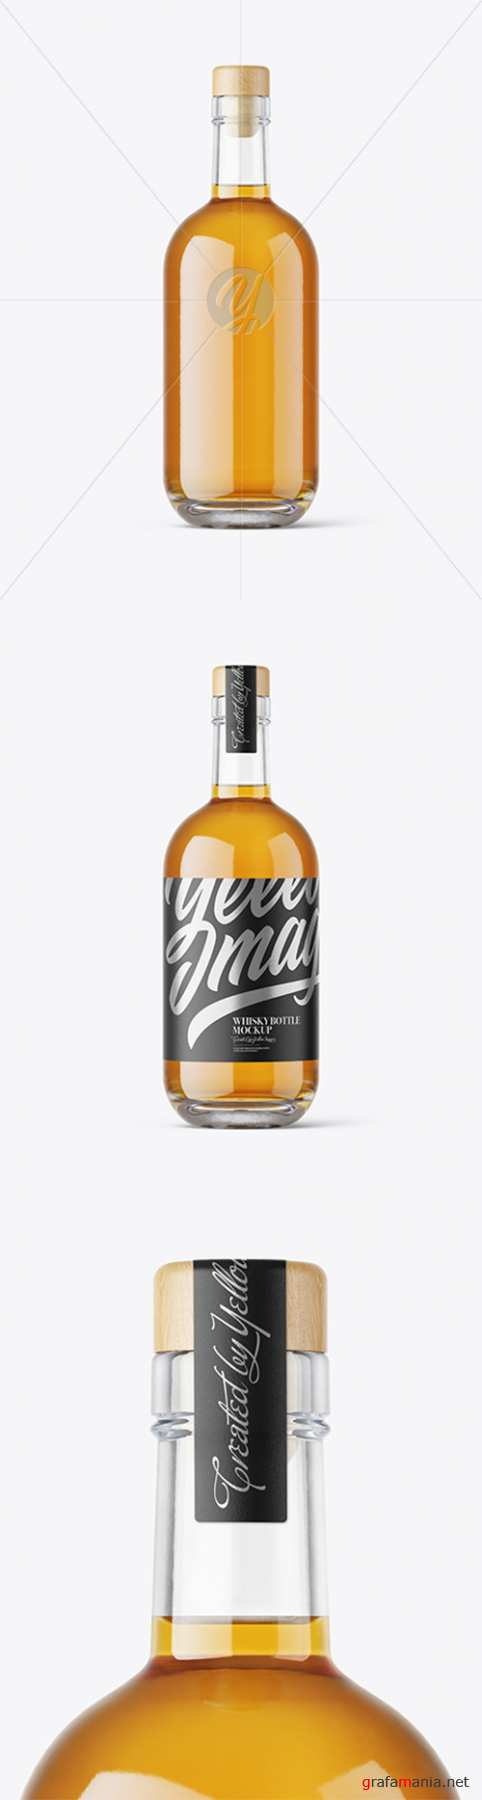 Clear Glass Whisky Bottle mockup 54915